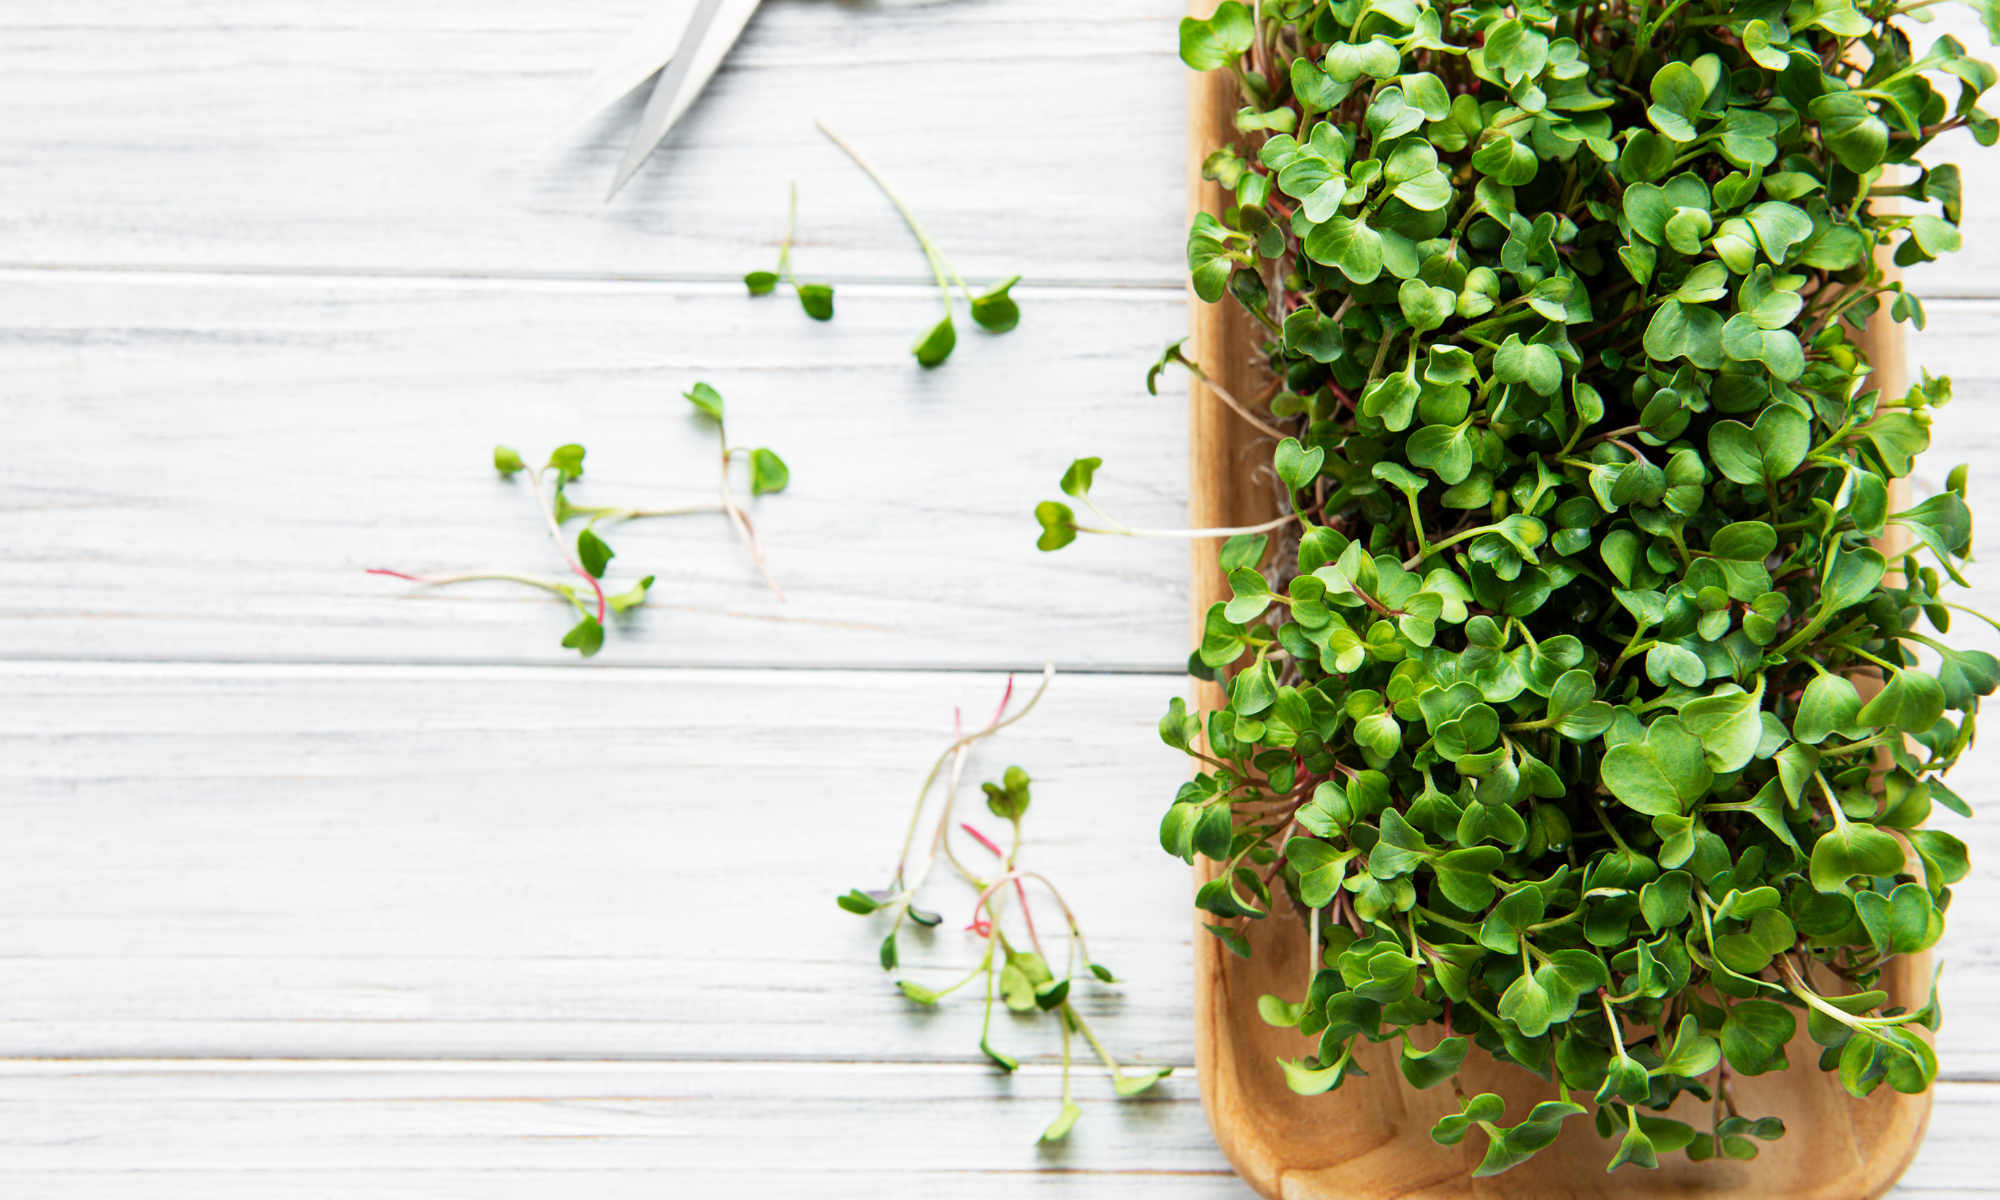 Growing and Harvesting Microgreens at Home